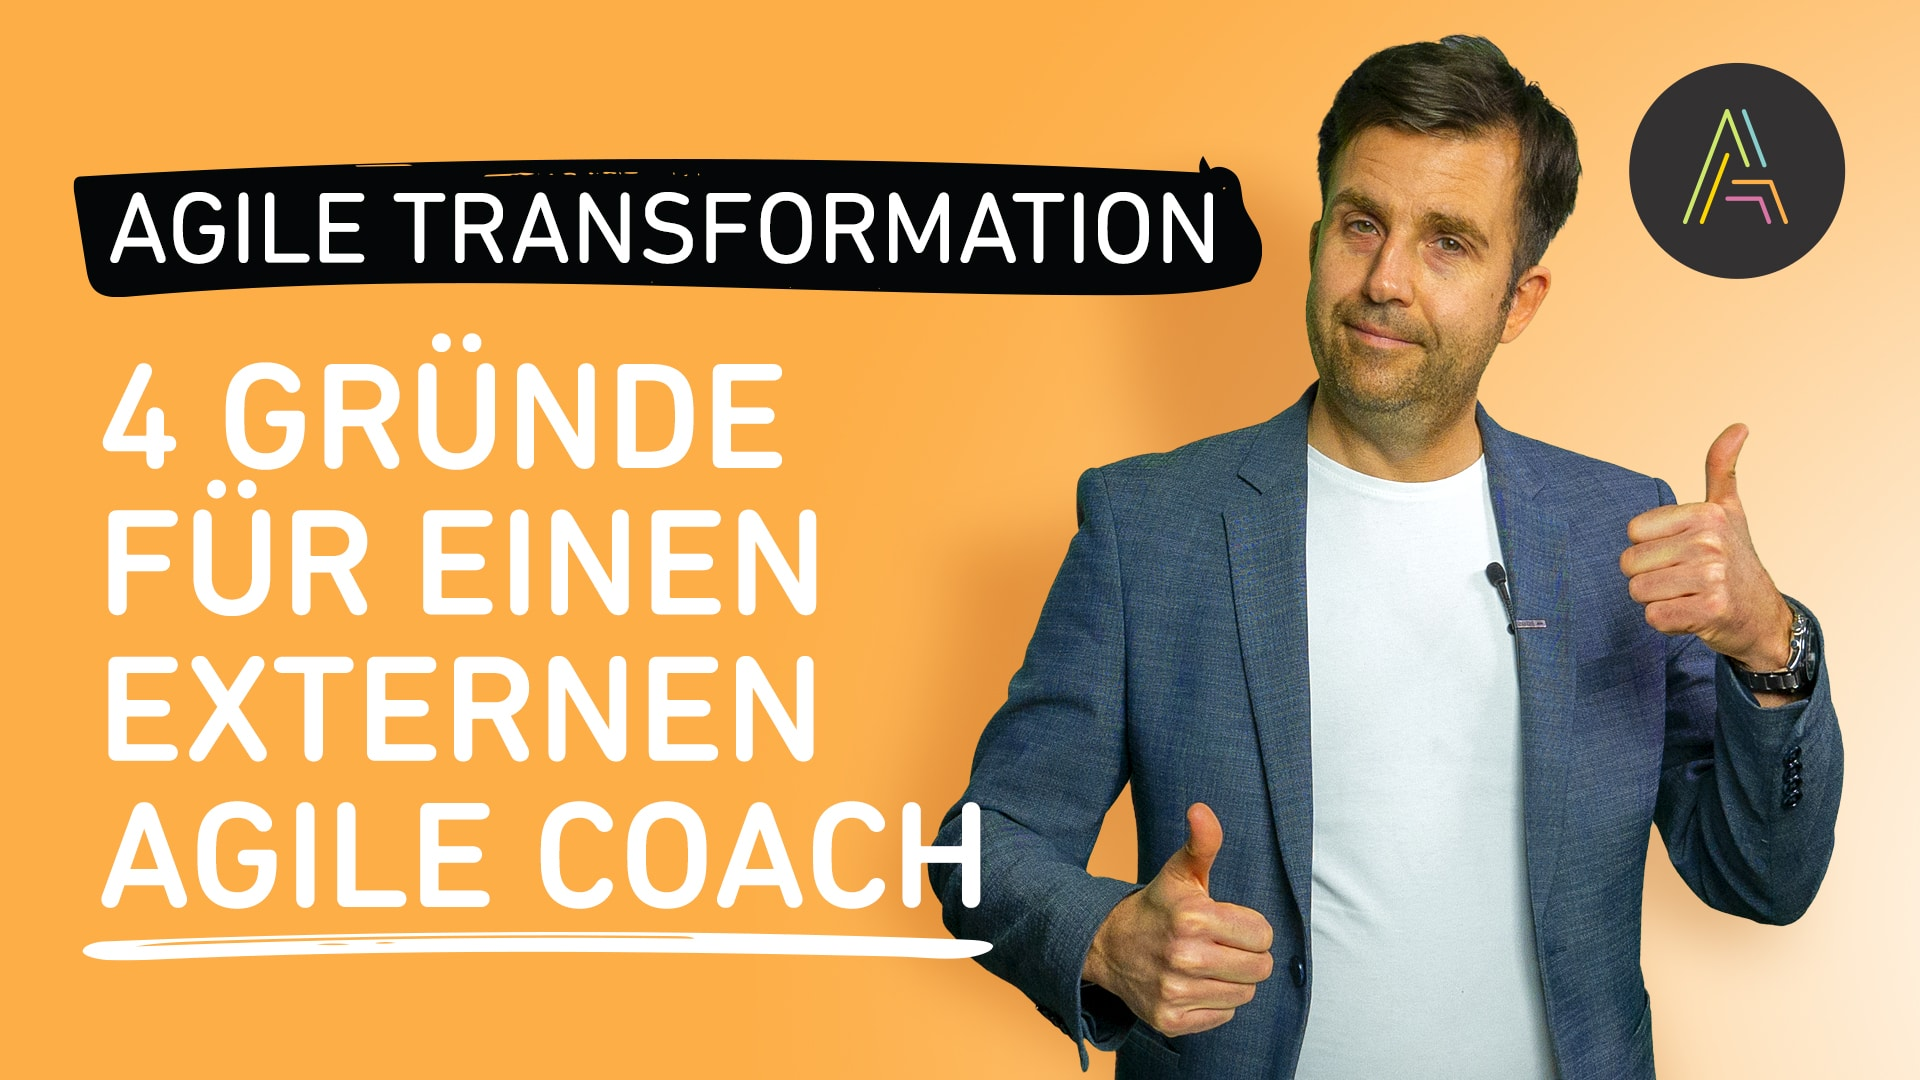 Gründe Agile Transformation